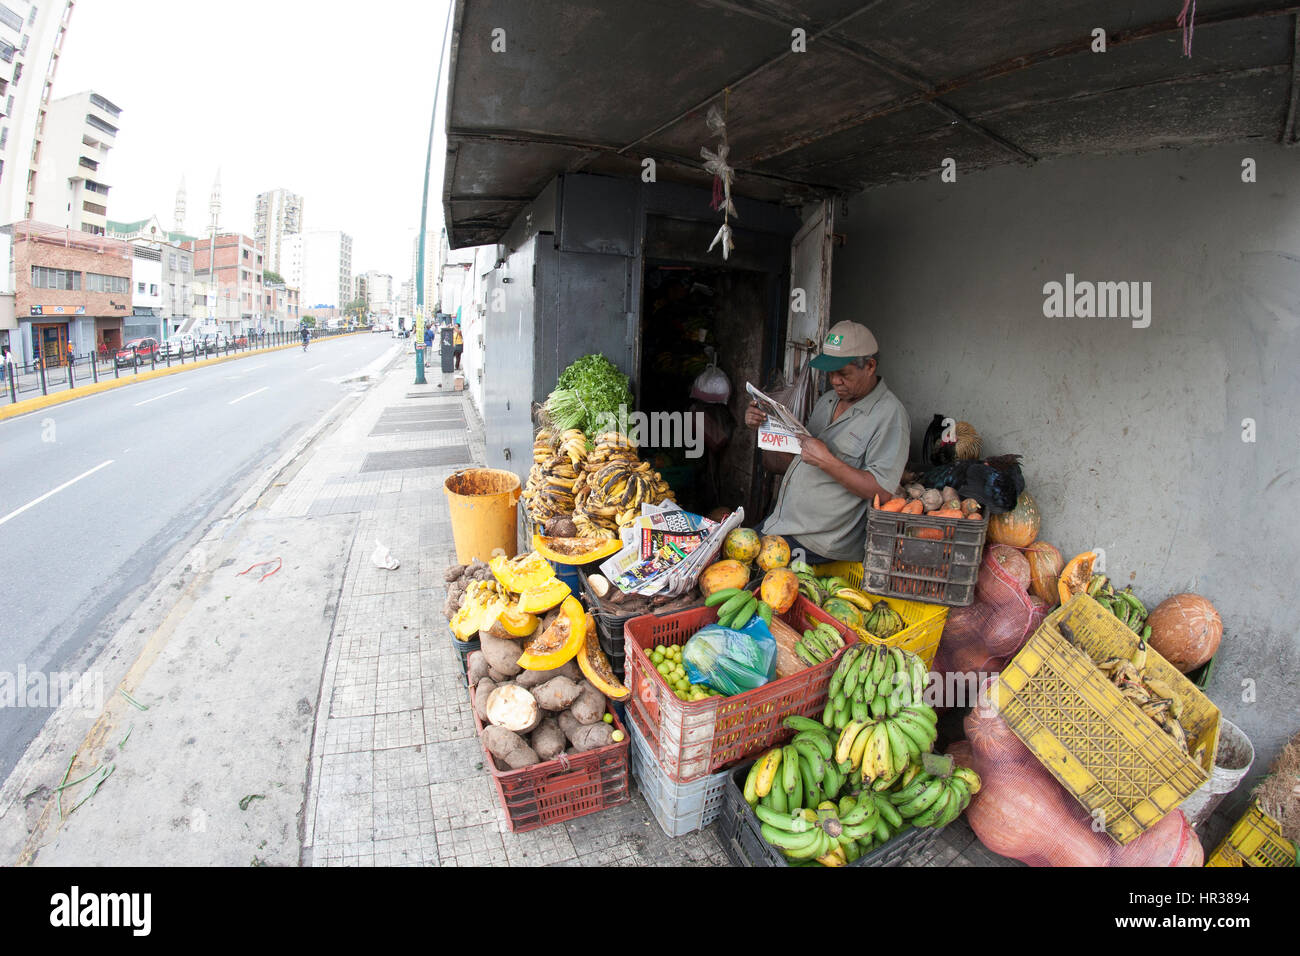 Caracas, Dtto Capital / Venezuela - 04-02-2012 : Man selling some fruits and vegetables in San Martín Avenue. - Stock Image